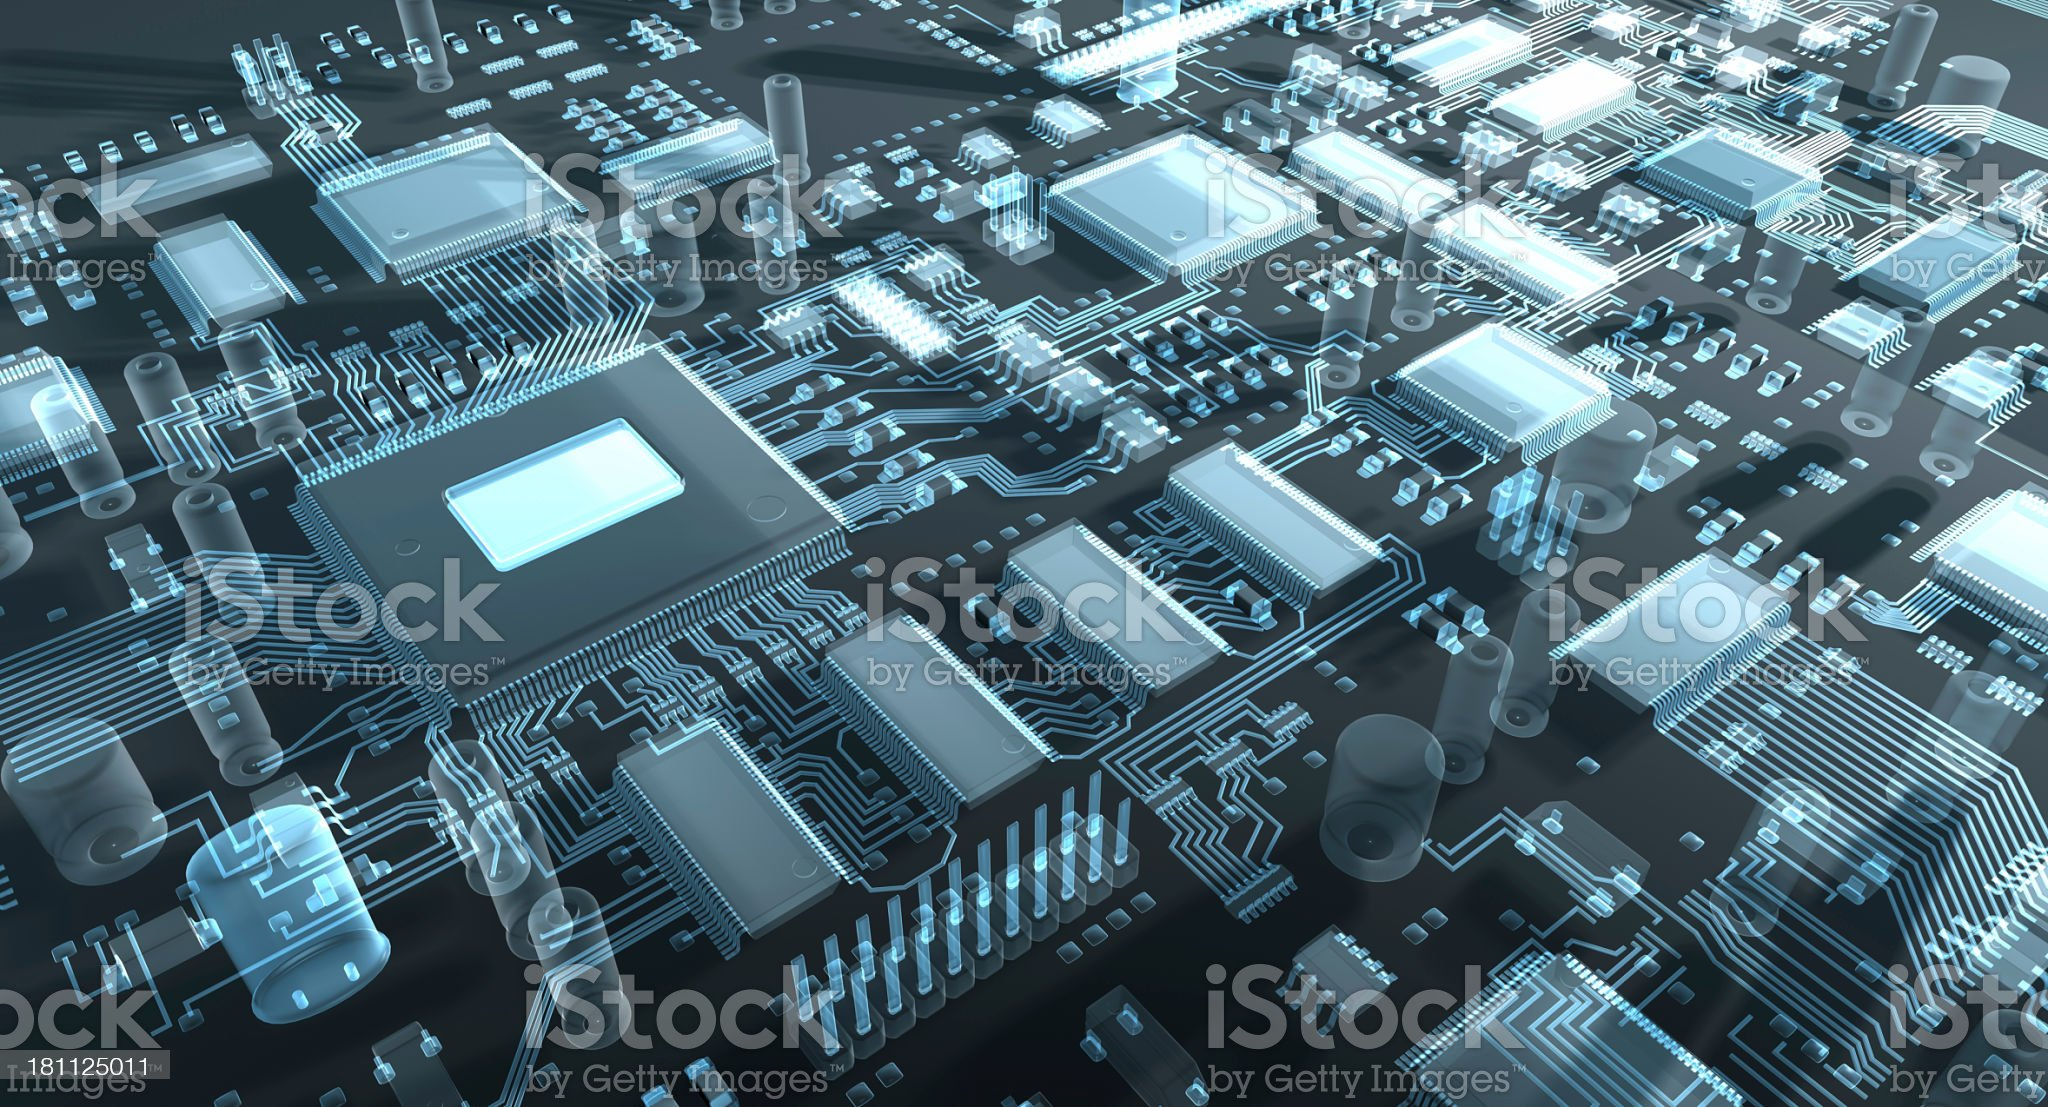 Abstract Hardware royalty-free stock photo